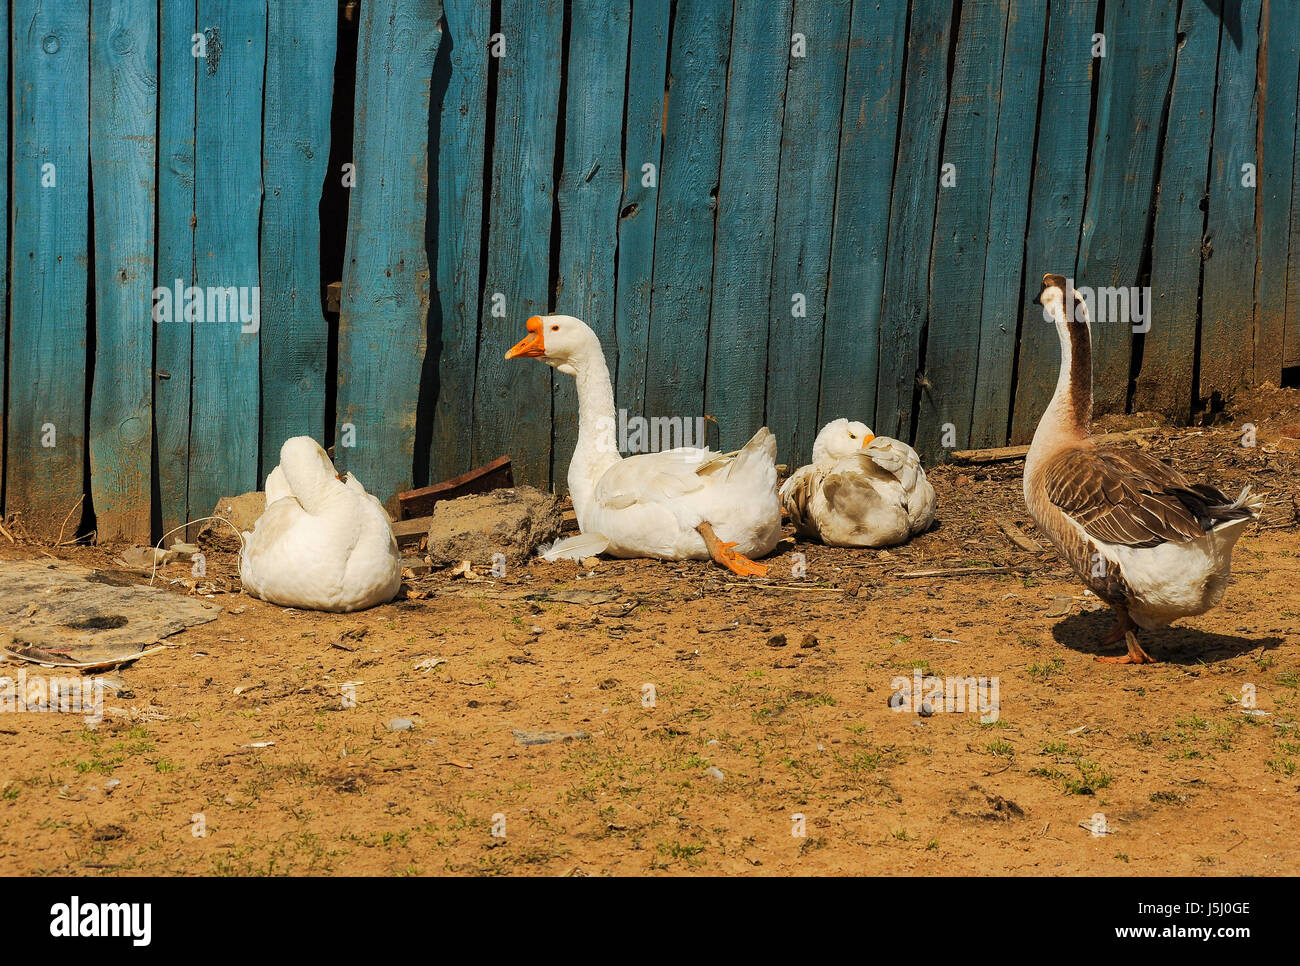 Poultry walking in the fresh air. - Stock Image